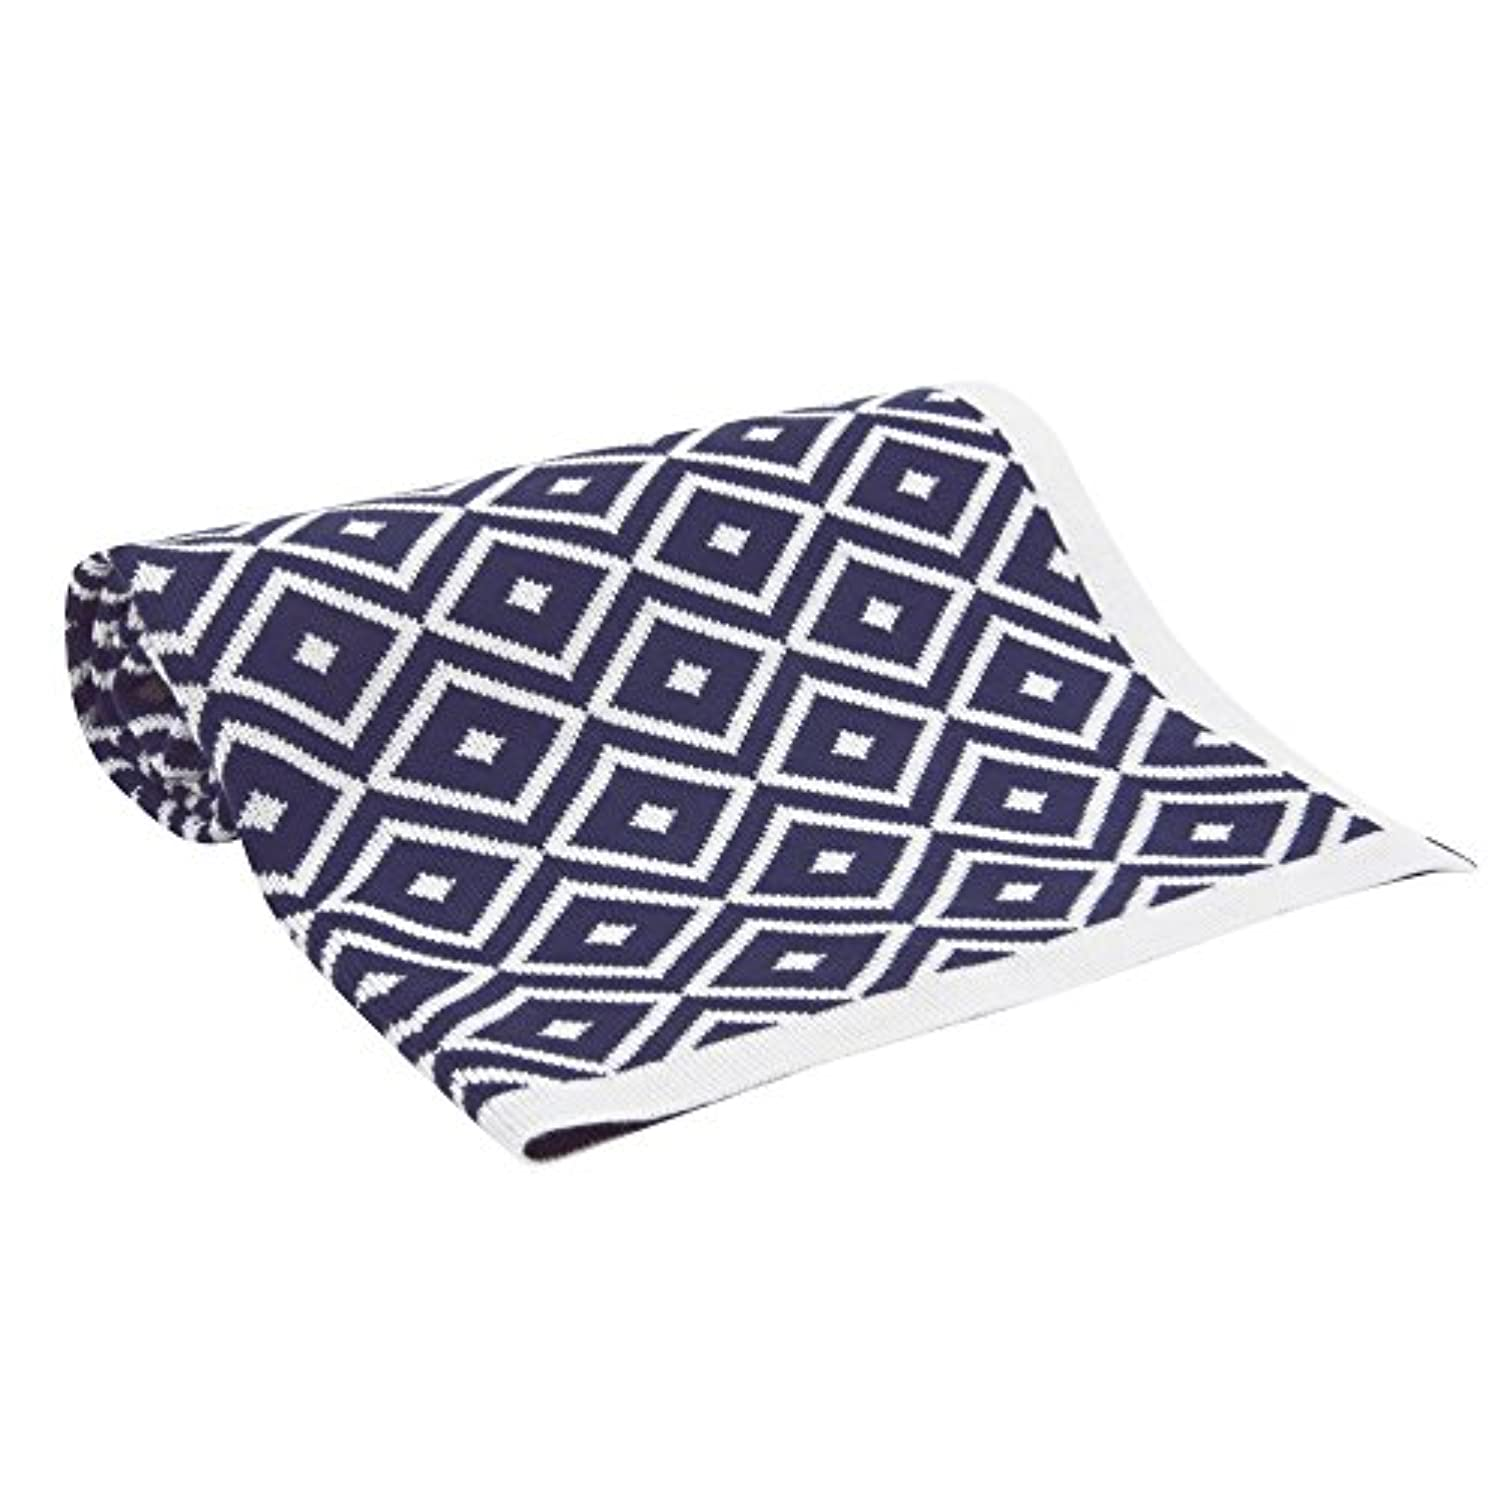 Lambs & Ivy Classic Navy Collection Blanket by Lambs & Ivy